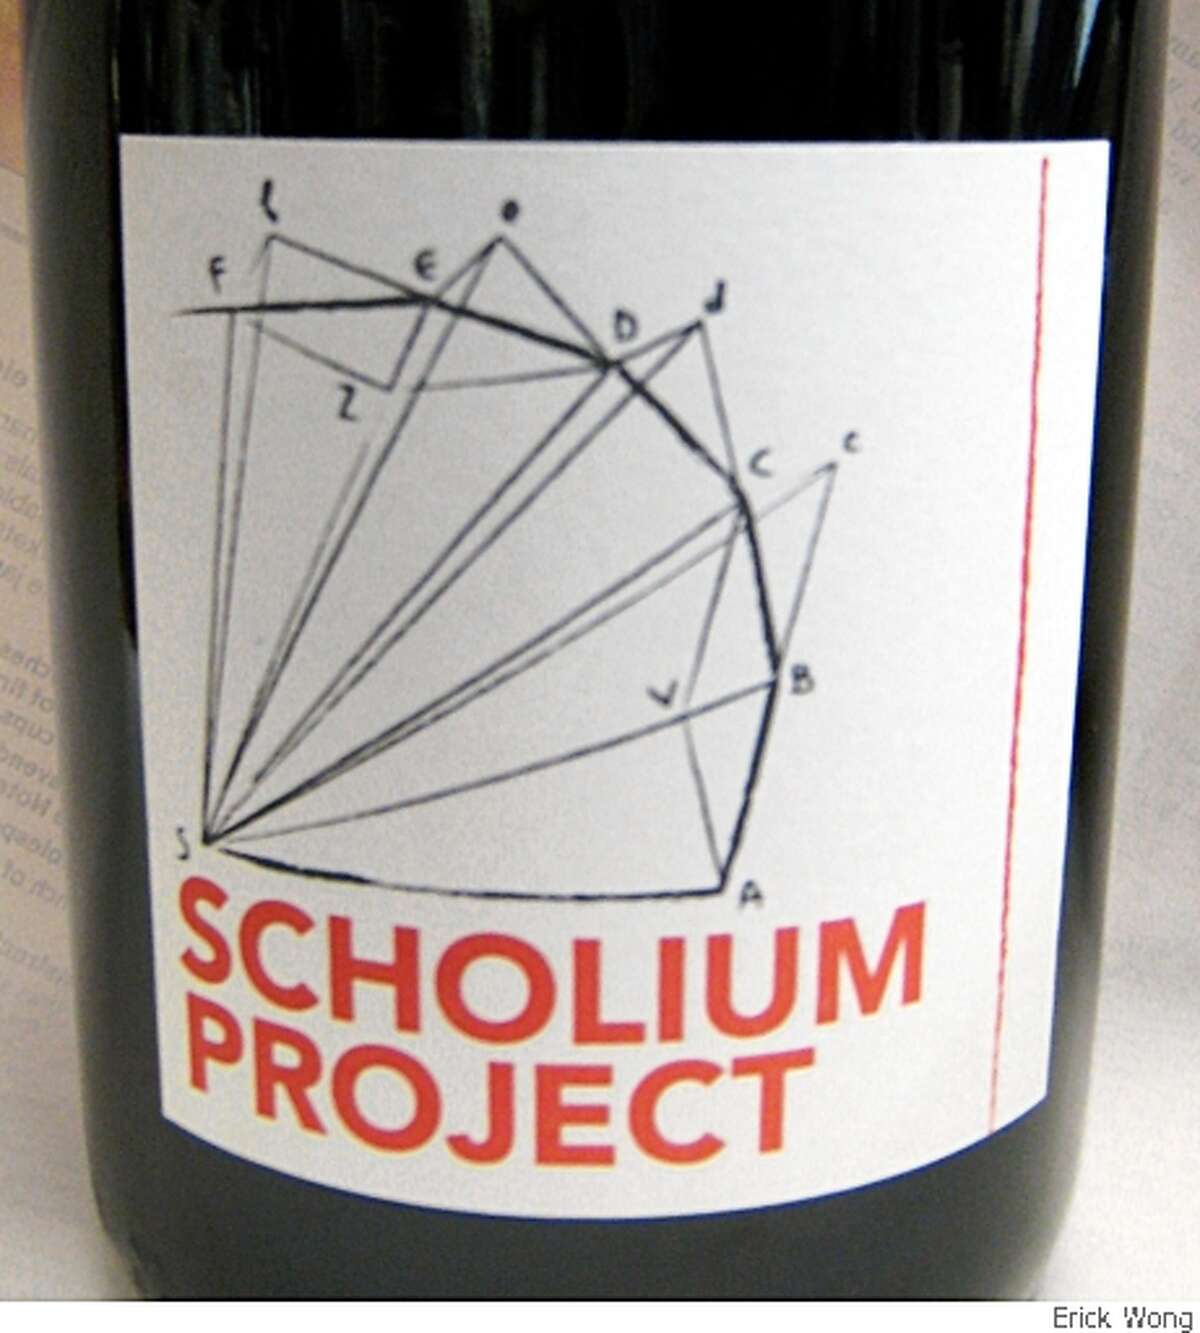 Scholium Project. One of six cult wines to covet.